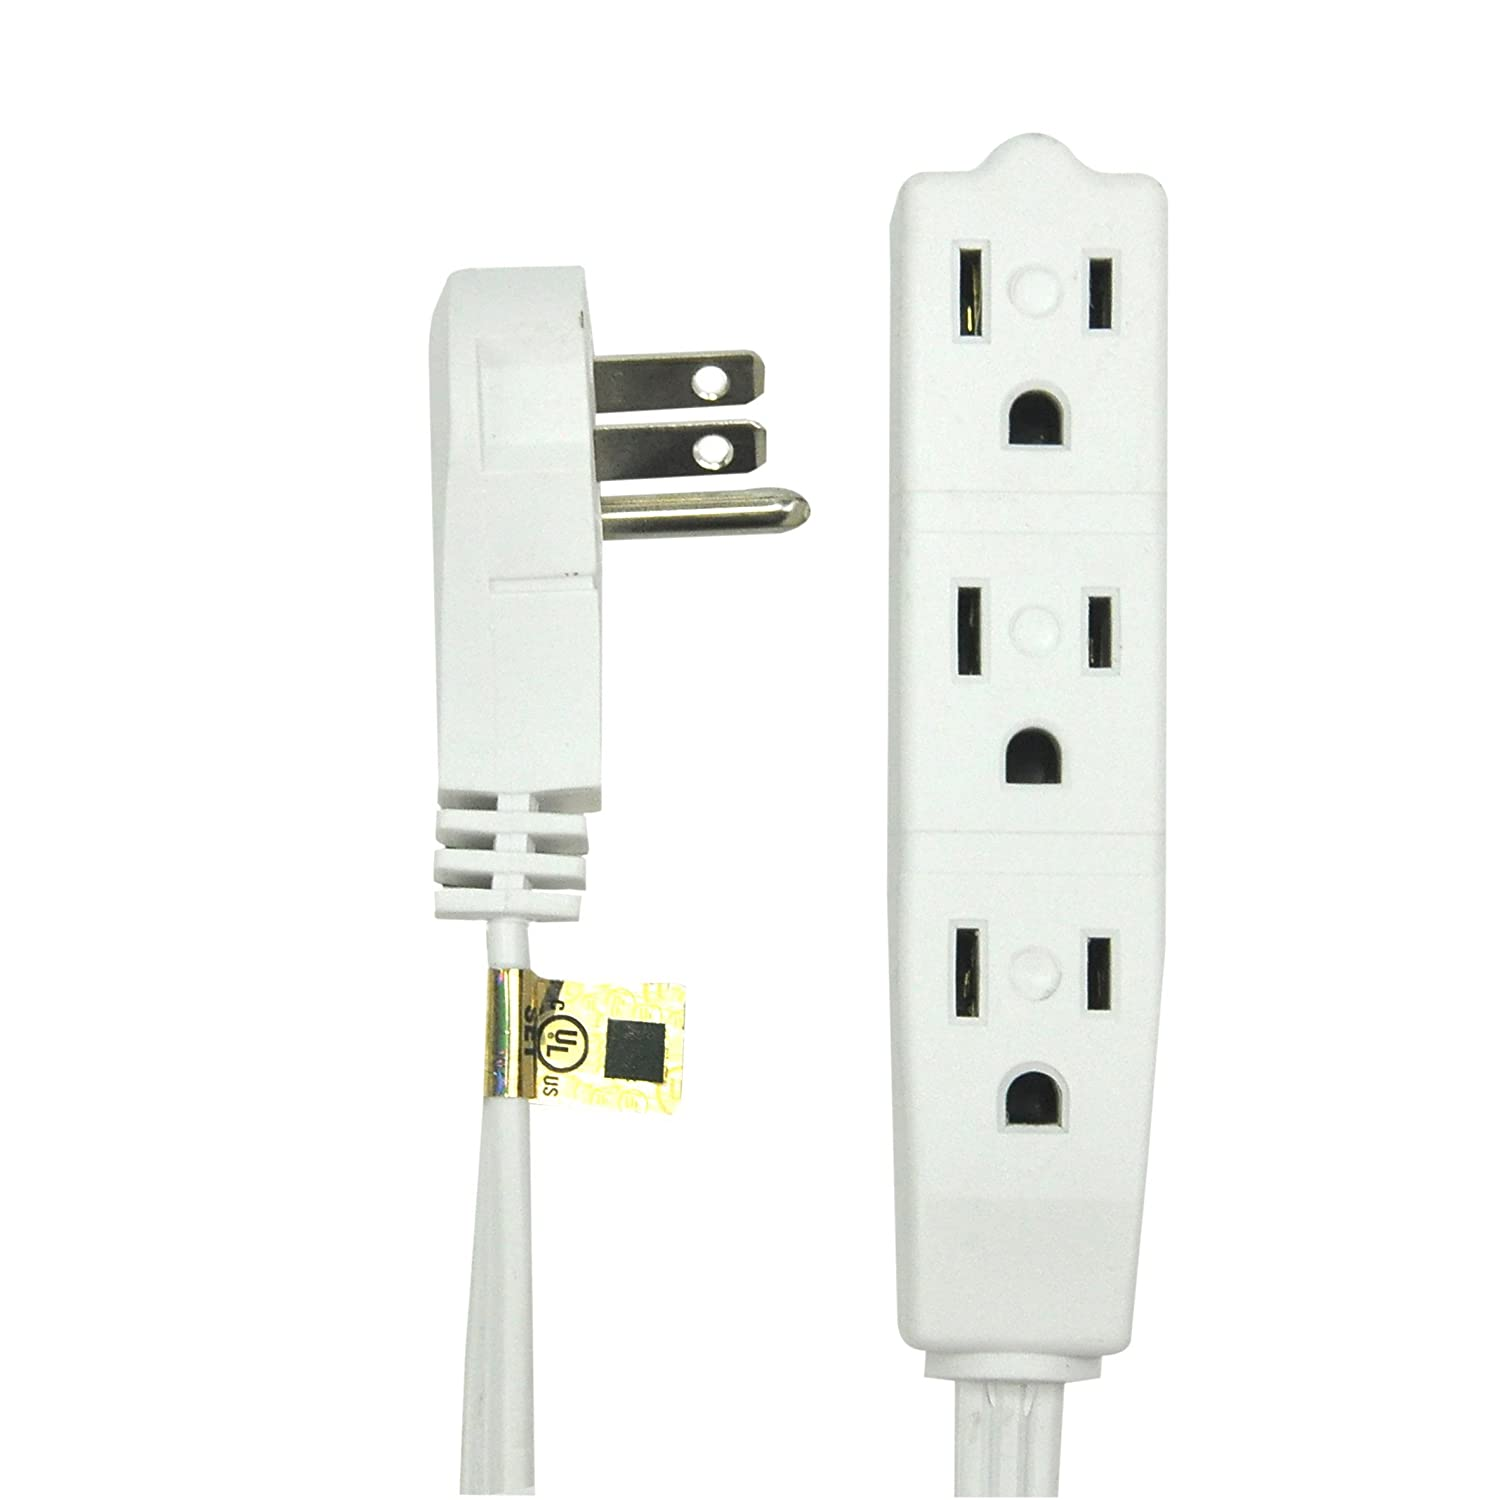 extension cords com bindmaster 15 feet extension cord wire 3 prong grounded 3 outlets angeled flat plug white